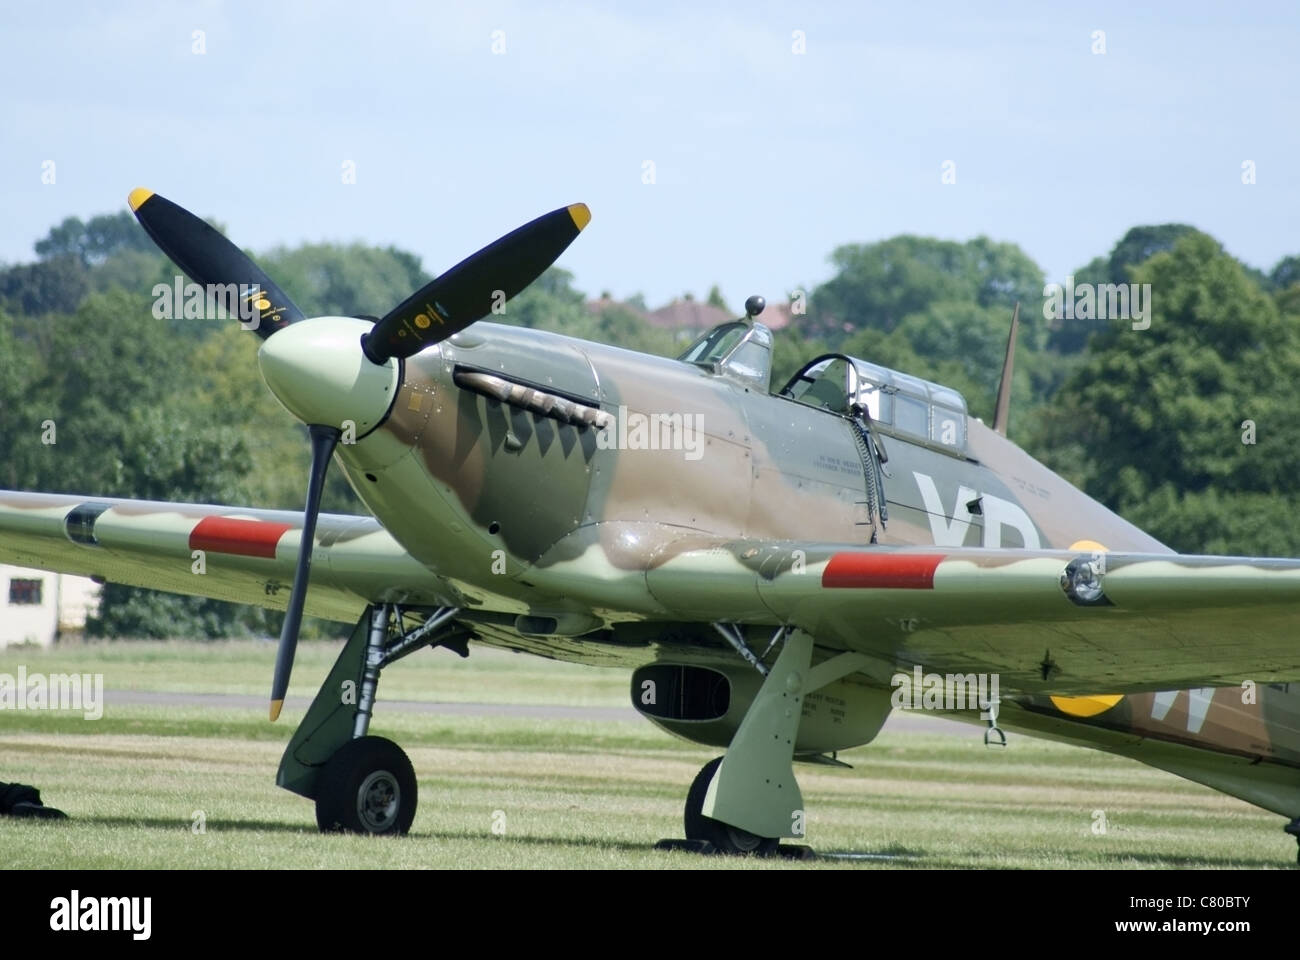 Hawker Hurricane Mark 1 single seat RAF fighter from the Battle of Britain era of world war two - Stock Image